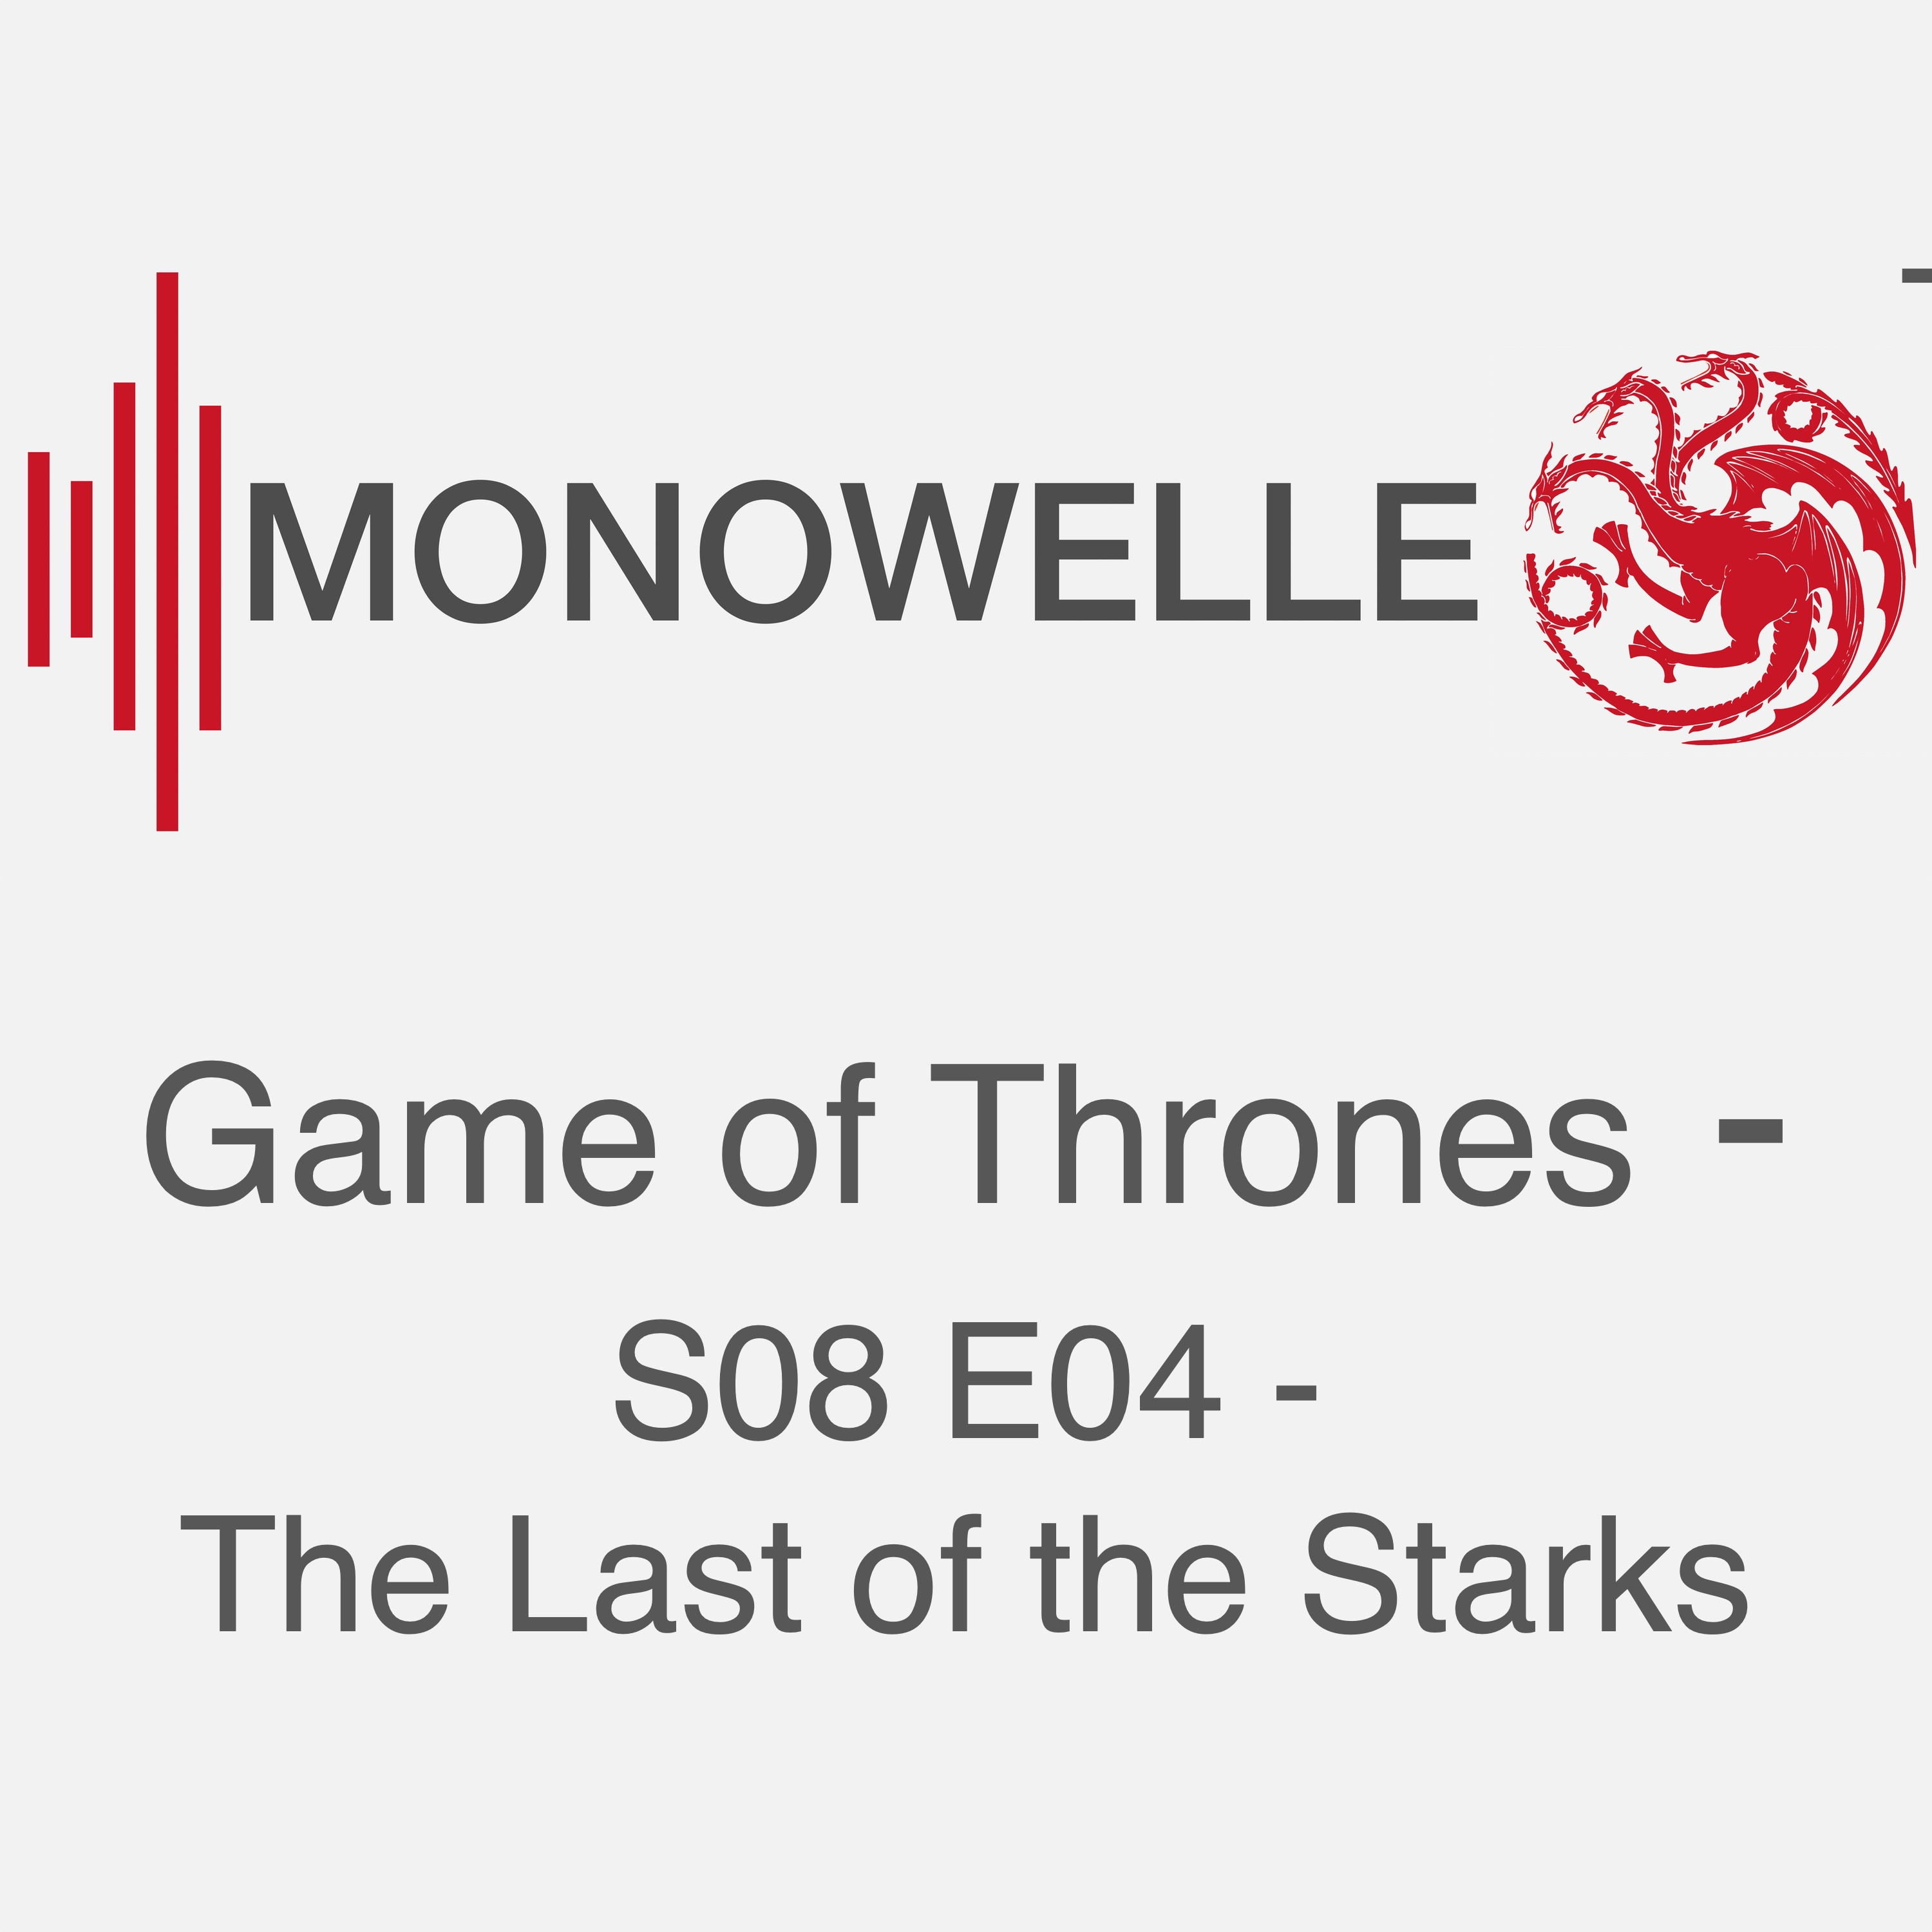 S08 E04 – The Last of the Starks